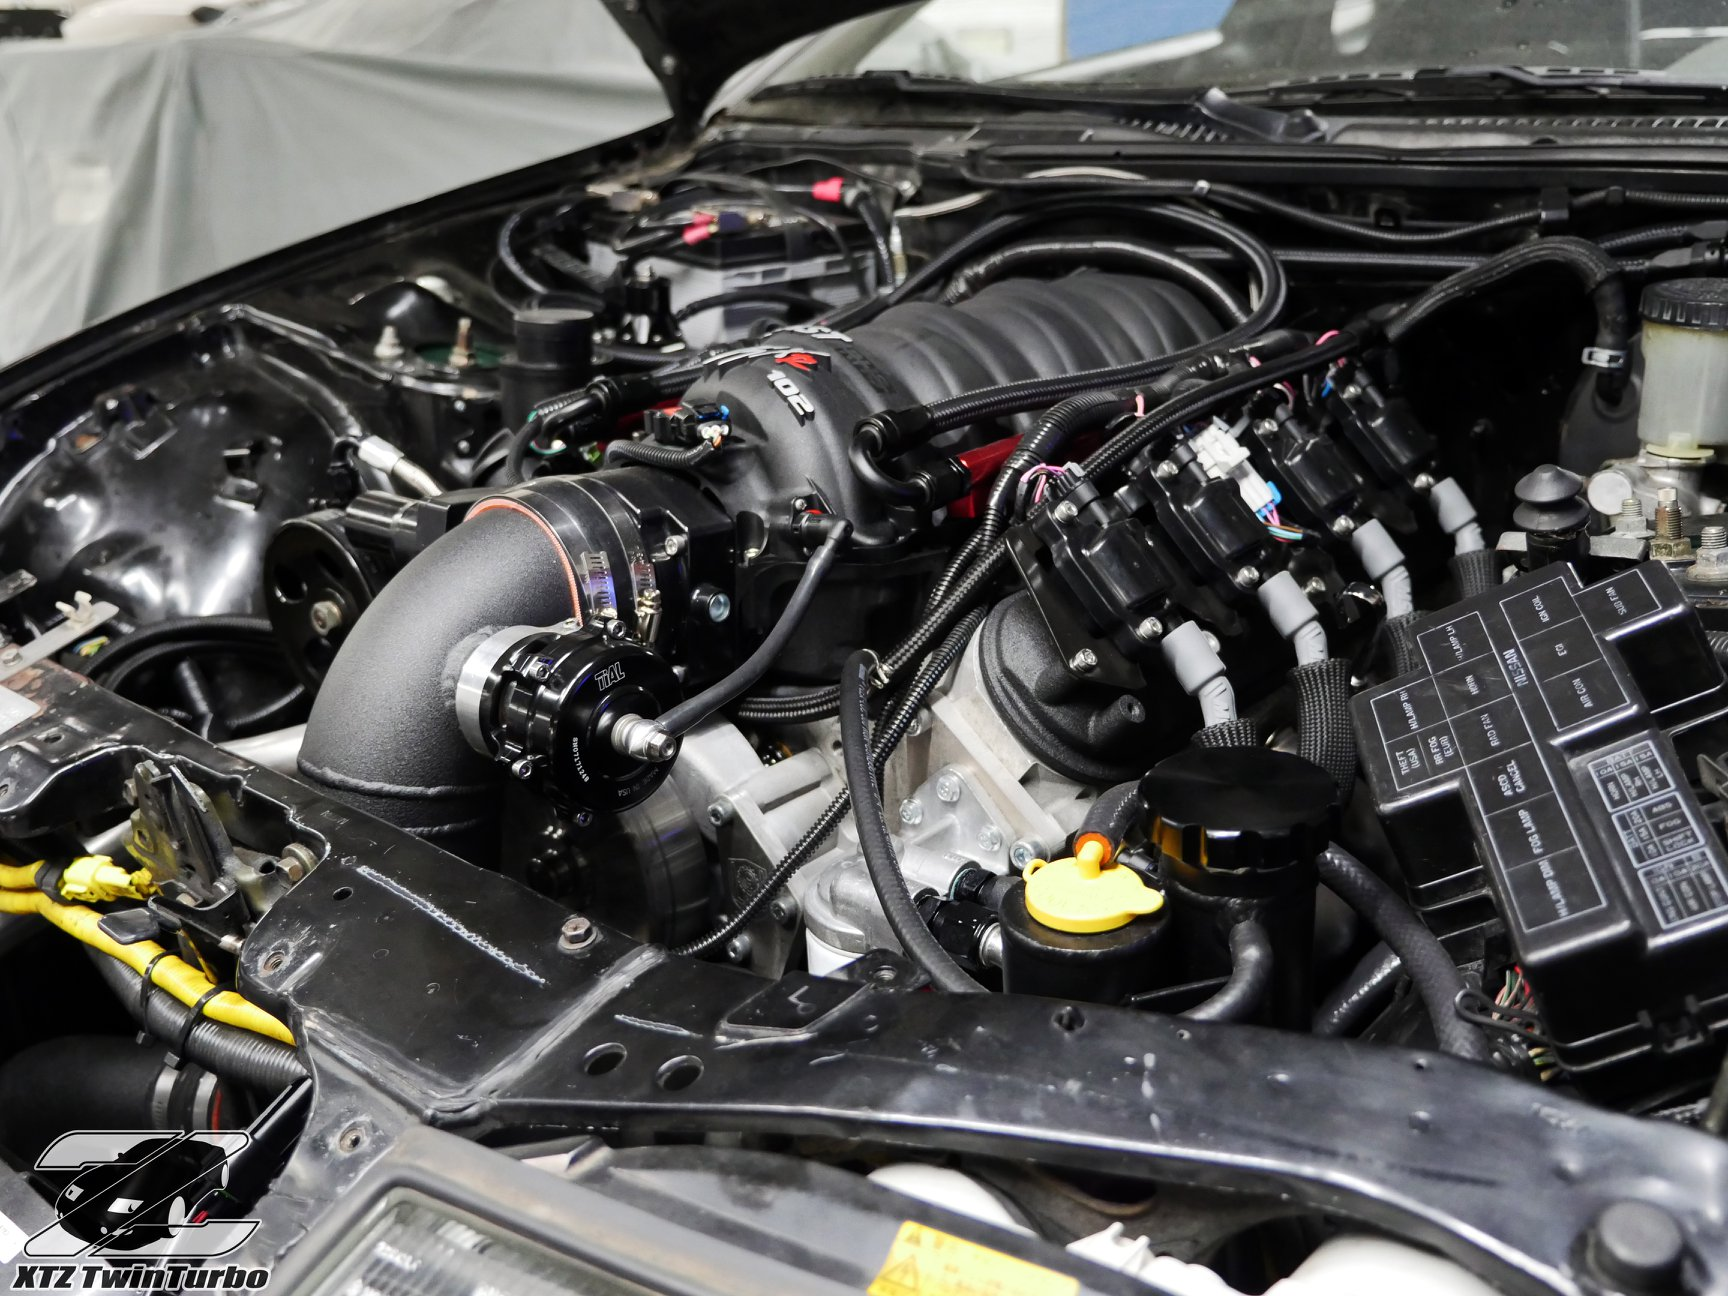 Nissan Zx With Twin Turbo Ls V on 1991 Nissan 300zx